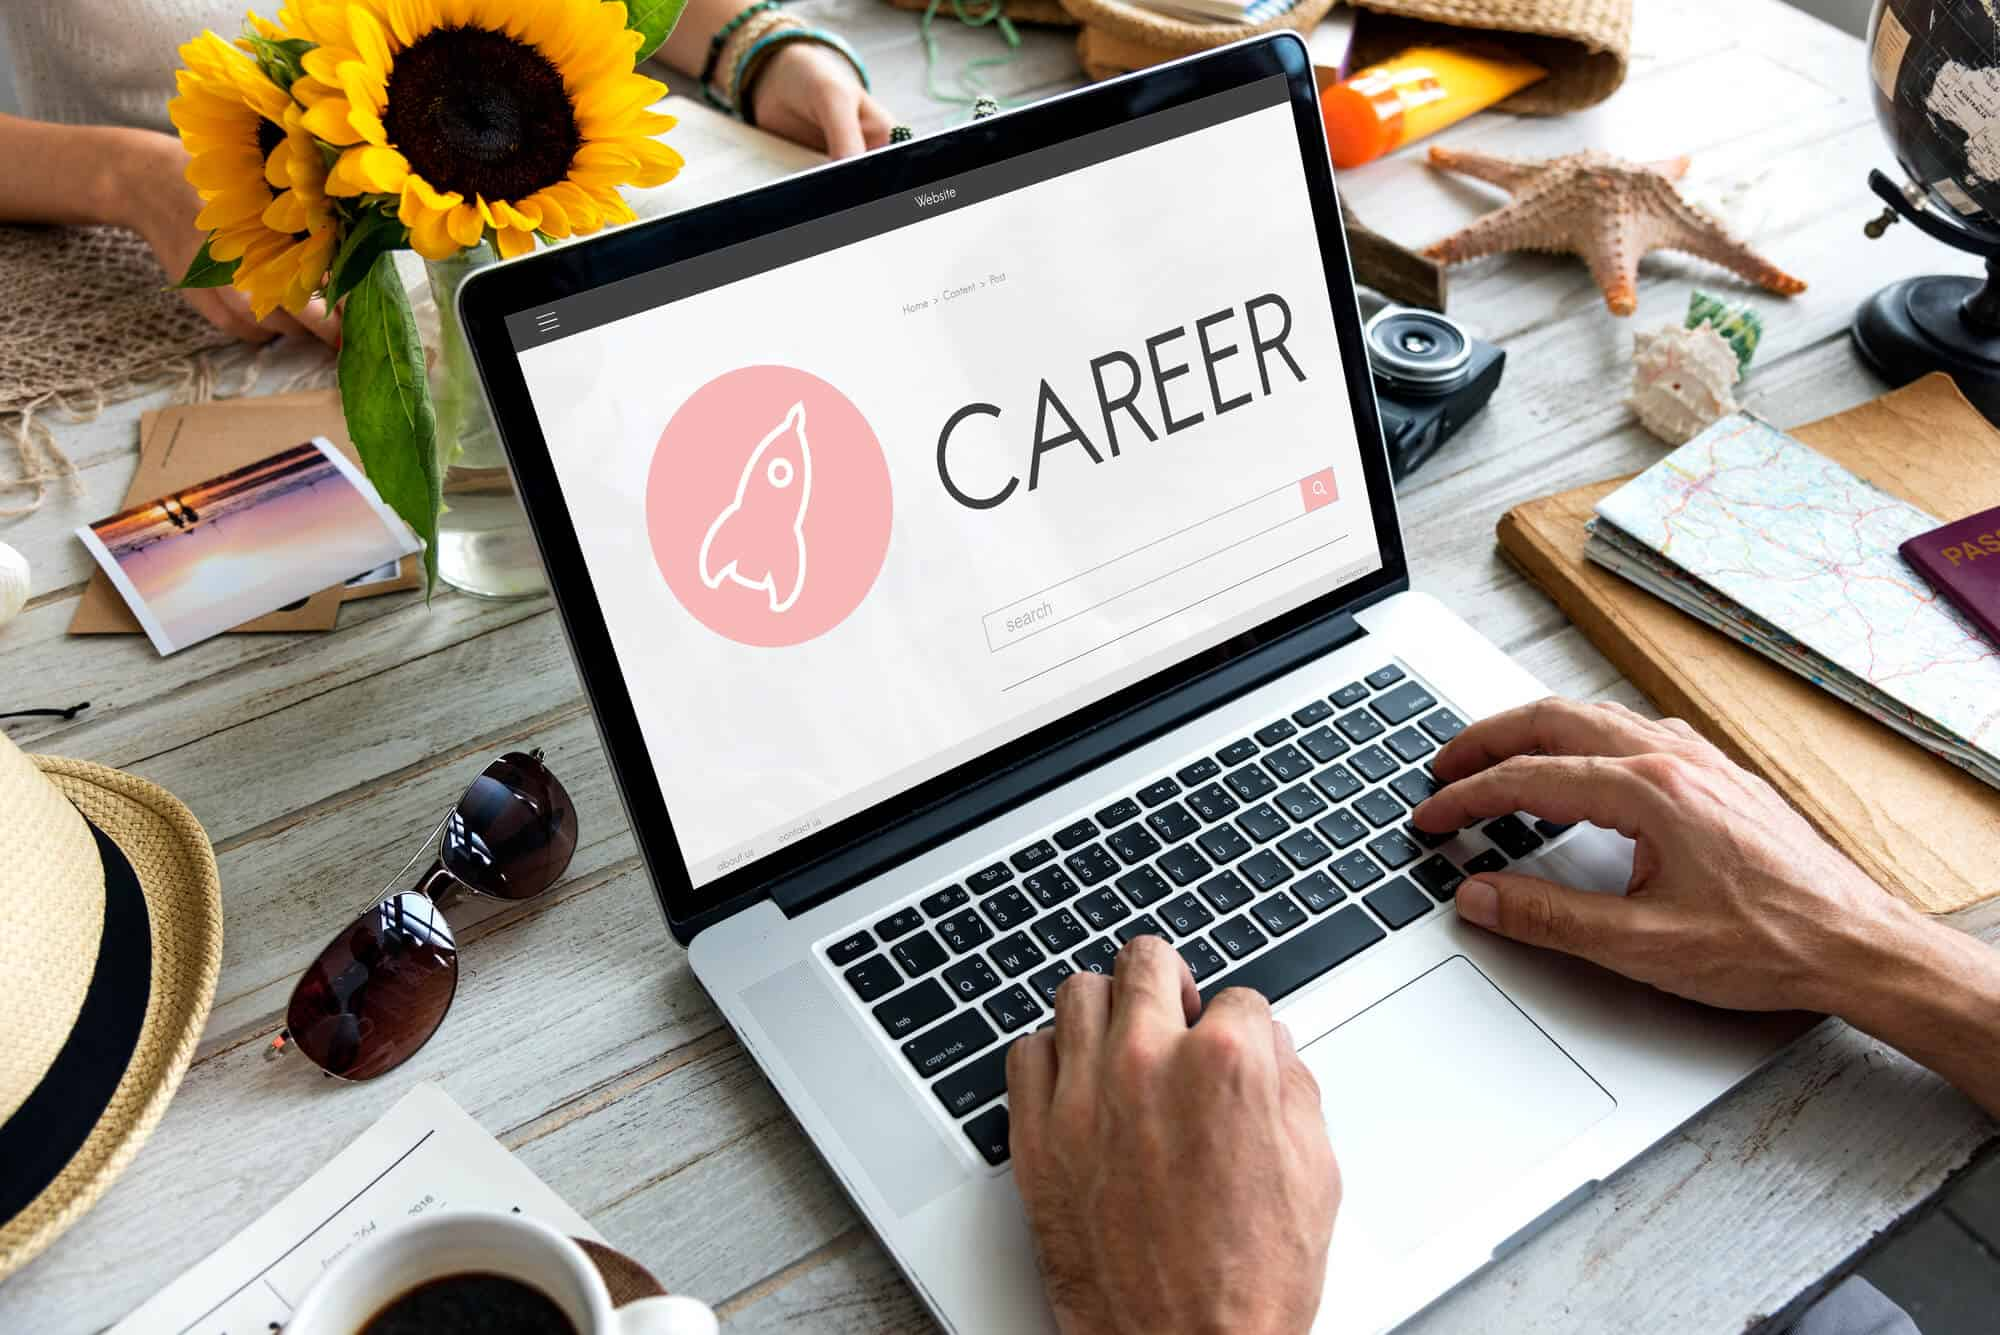 Thinking of Changing Your Job? New Job Ideas For 2020